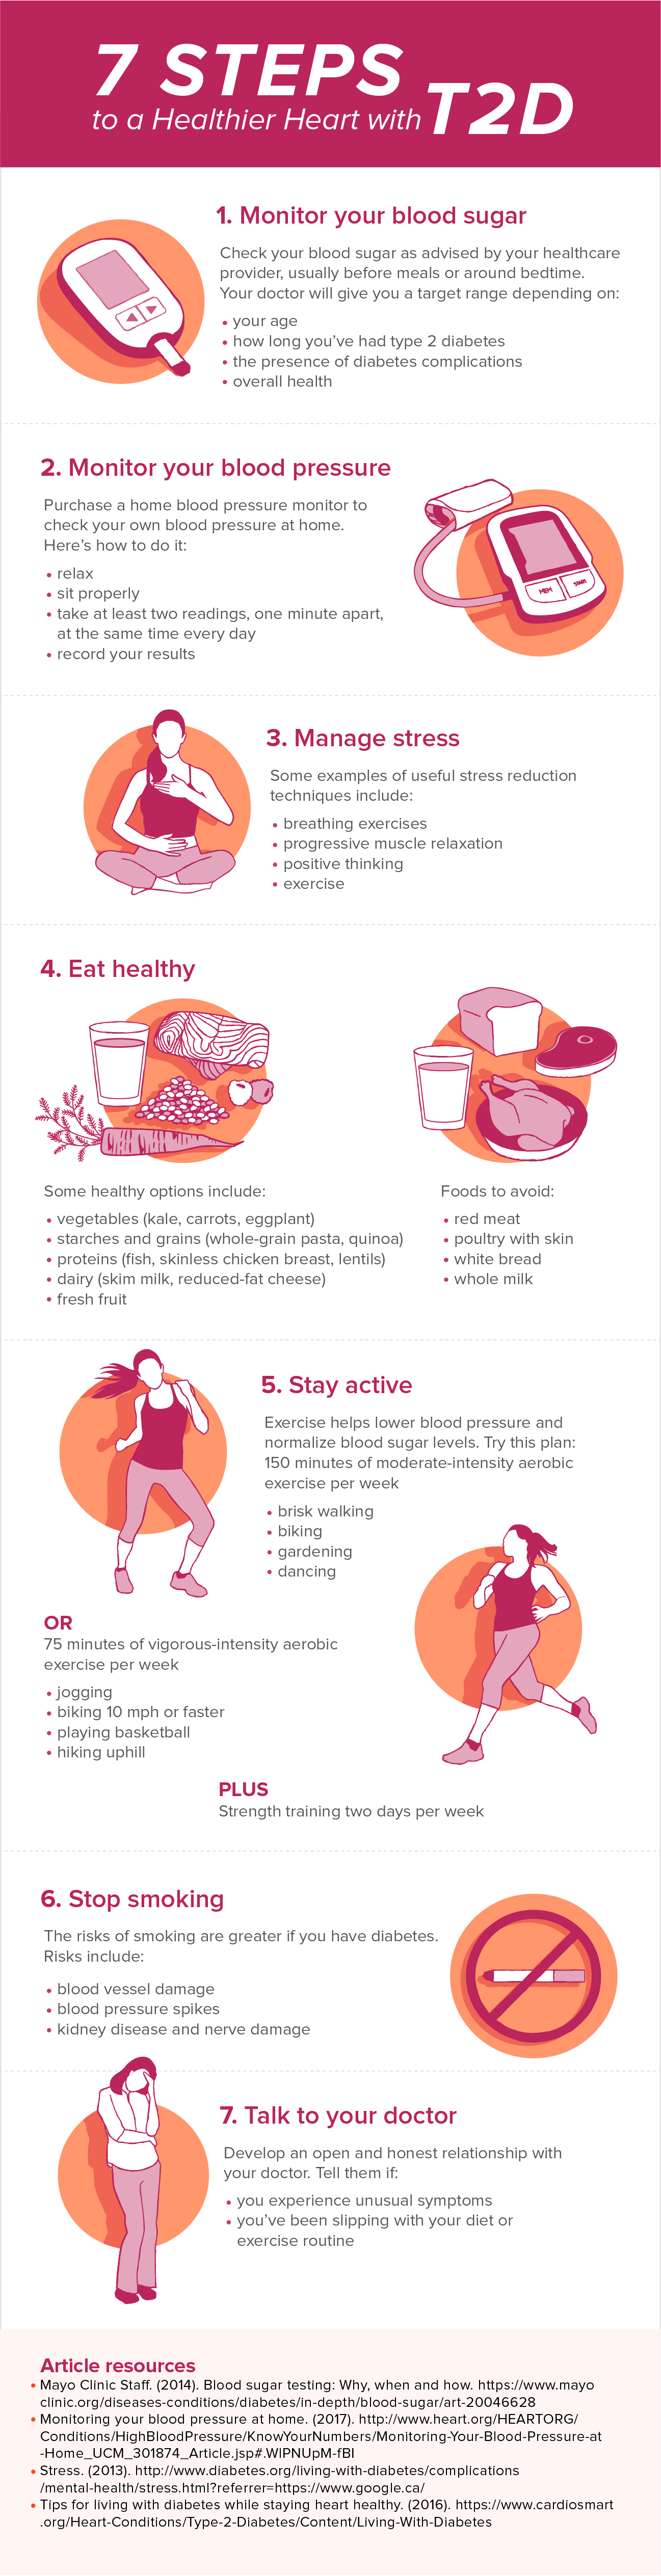 steps to healthier heart